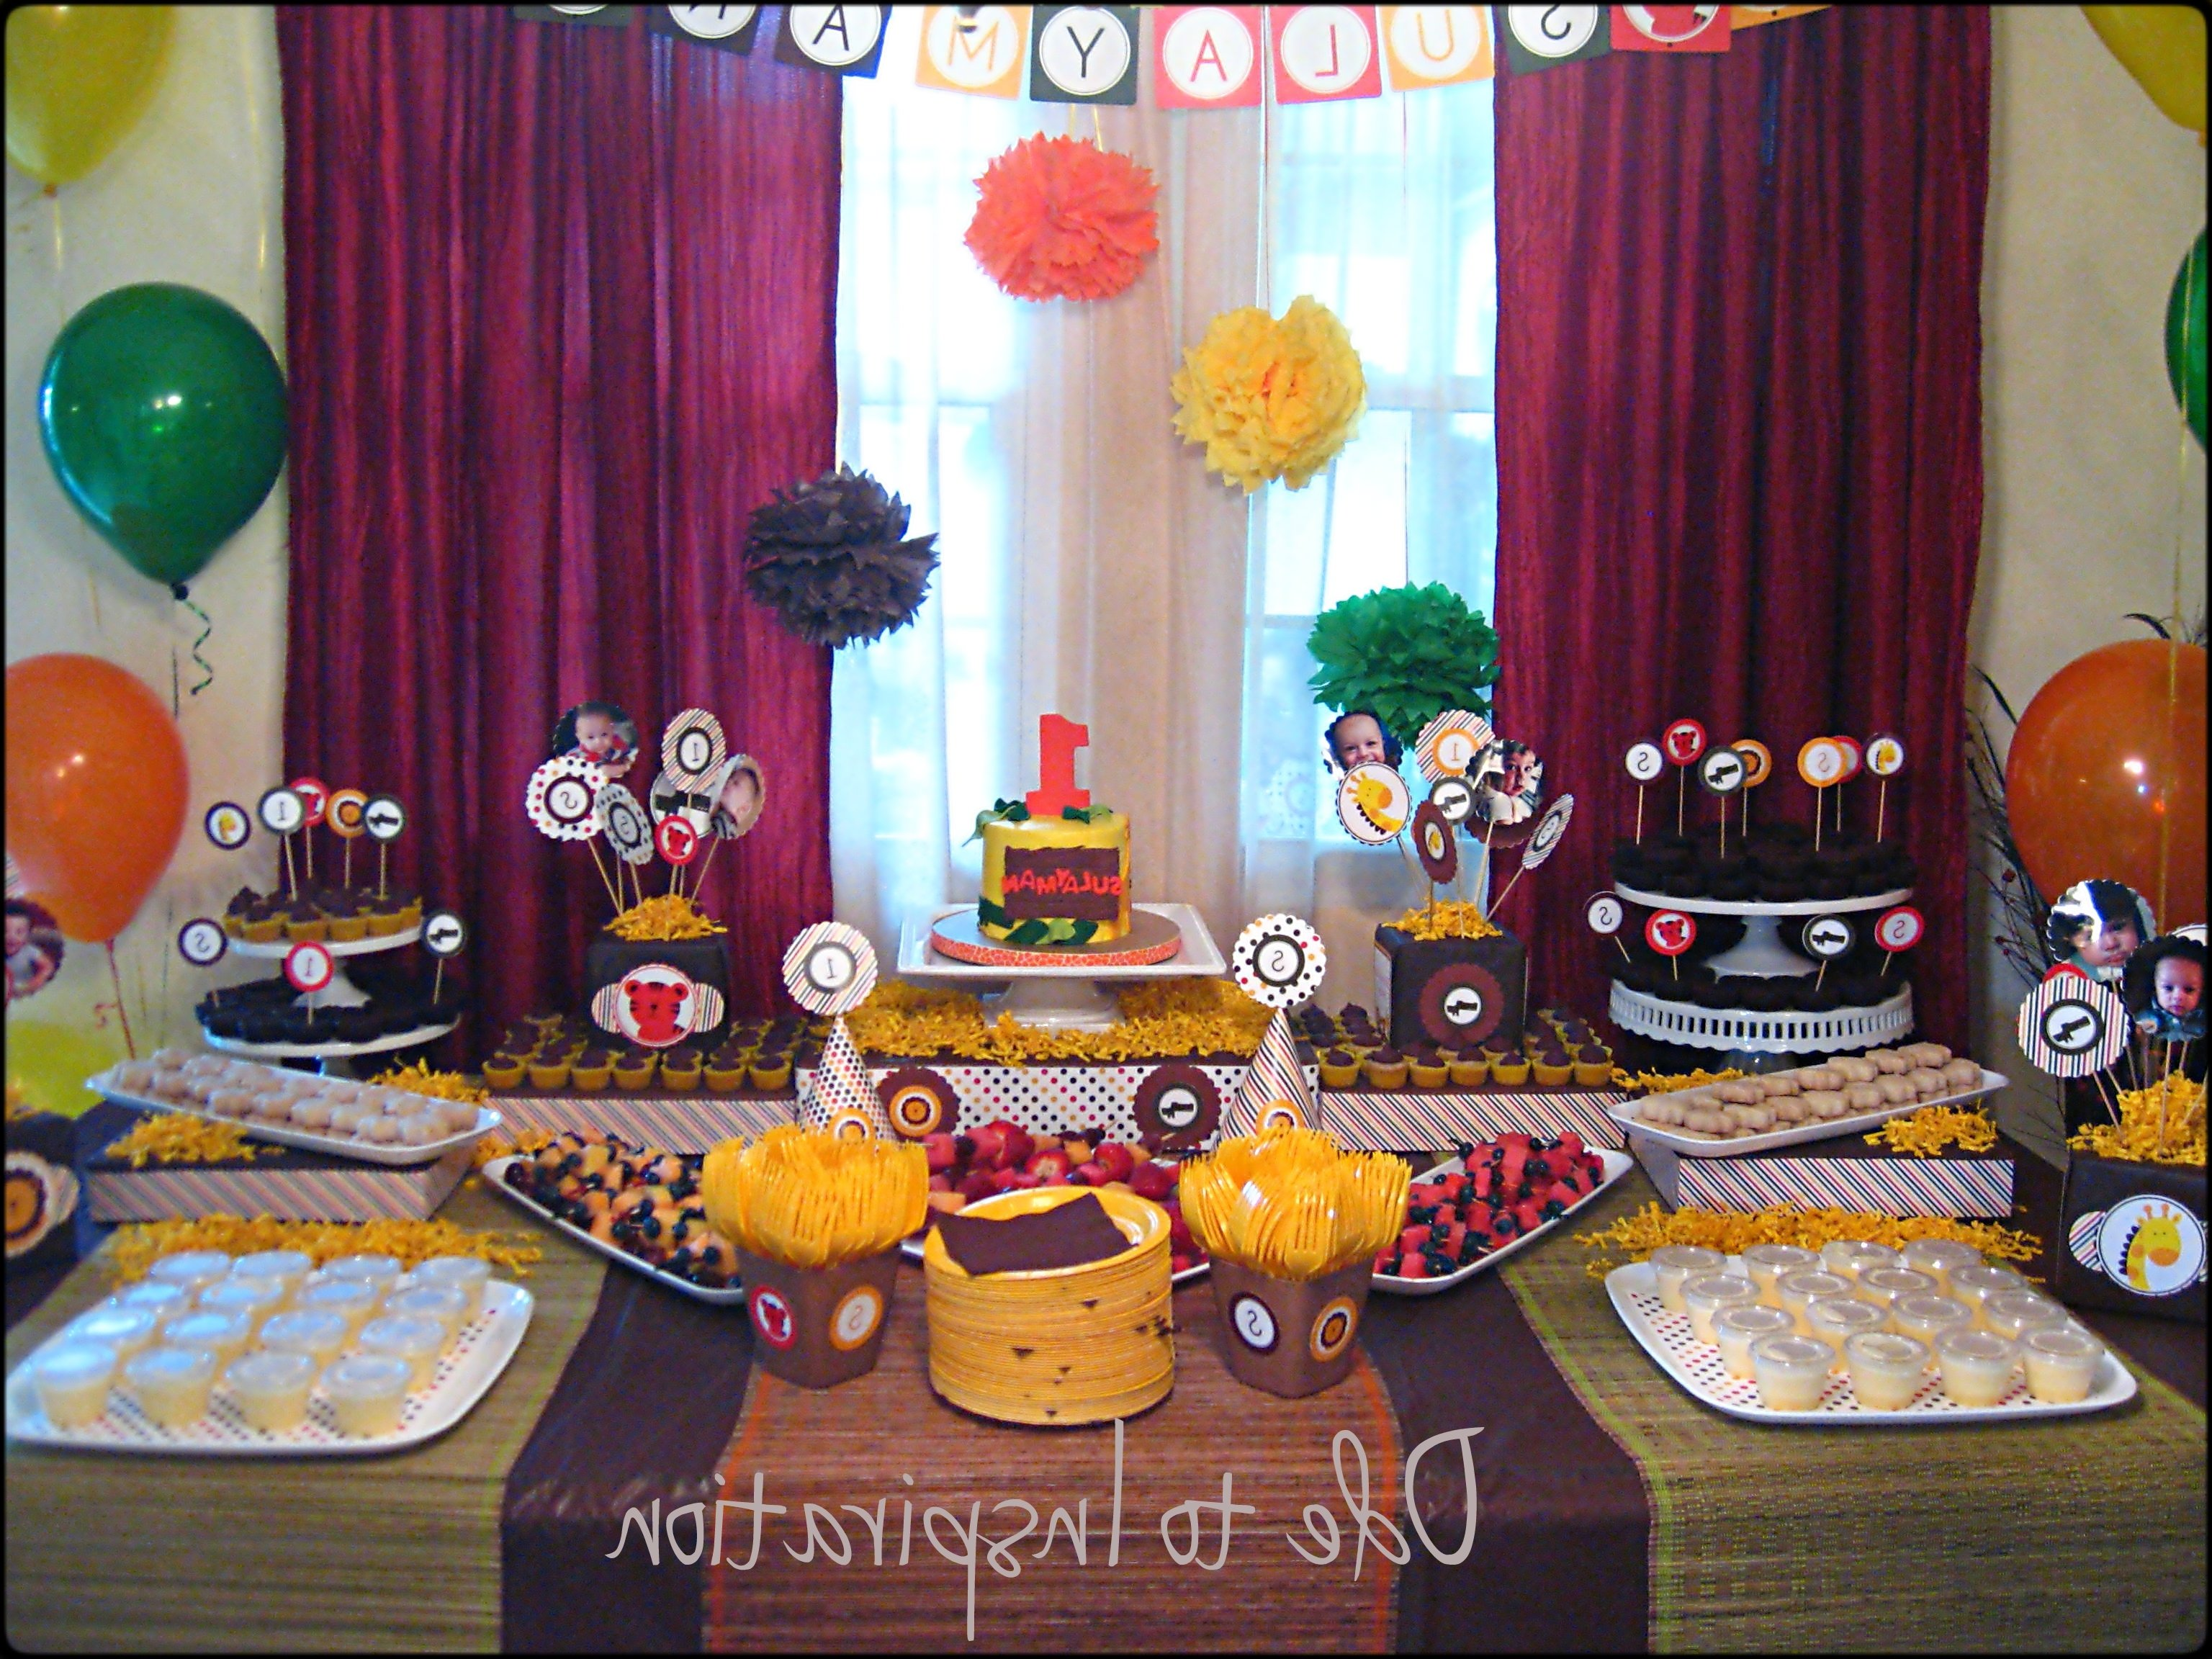 10 Unique Birthday Party At Home Ideas ideas for decoration for birthday party ideas for 21st birthday 2020